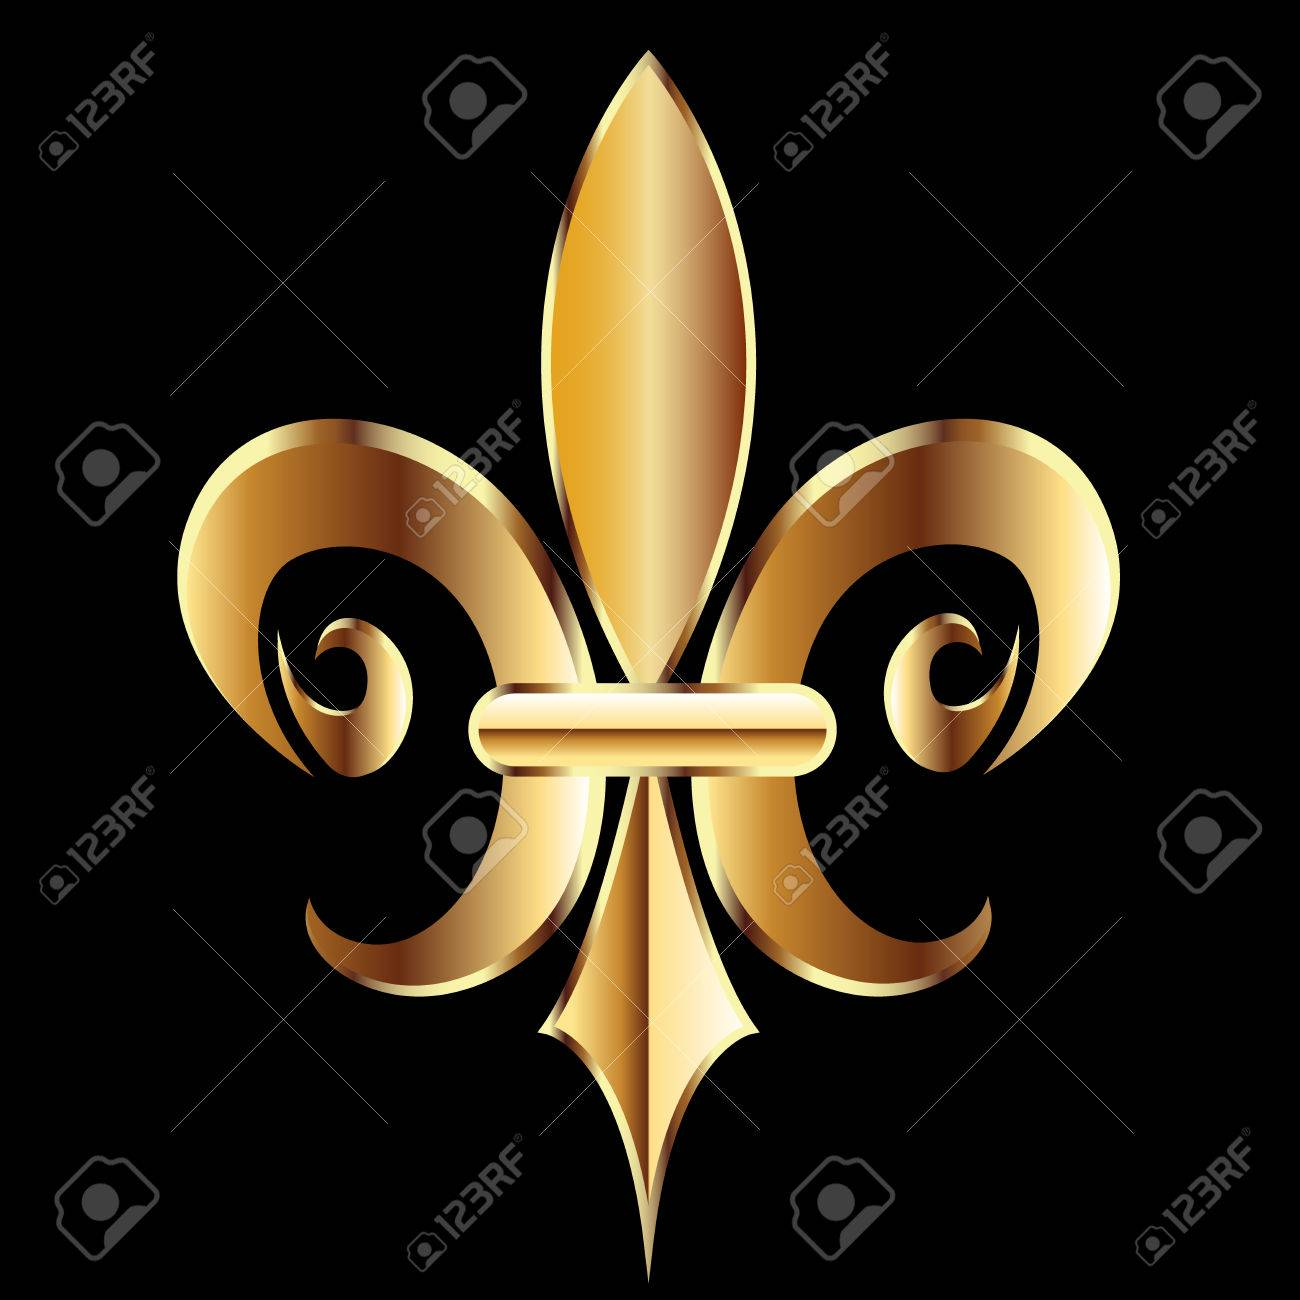 Fleur de lis business card holder gallery free business cards fleur de lis business card holder image collections free fleur de lis business cards gallery free magicingreecefo Gallery